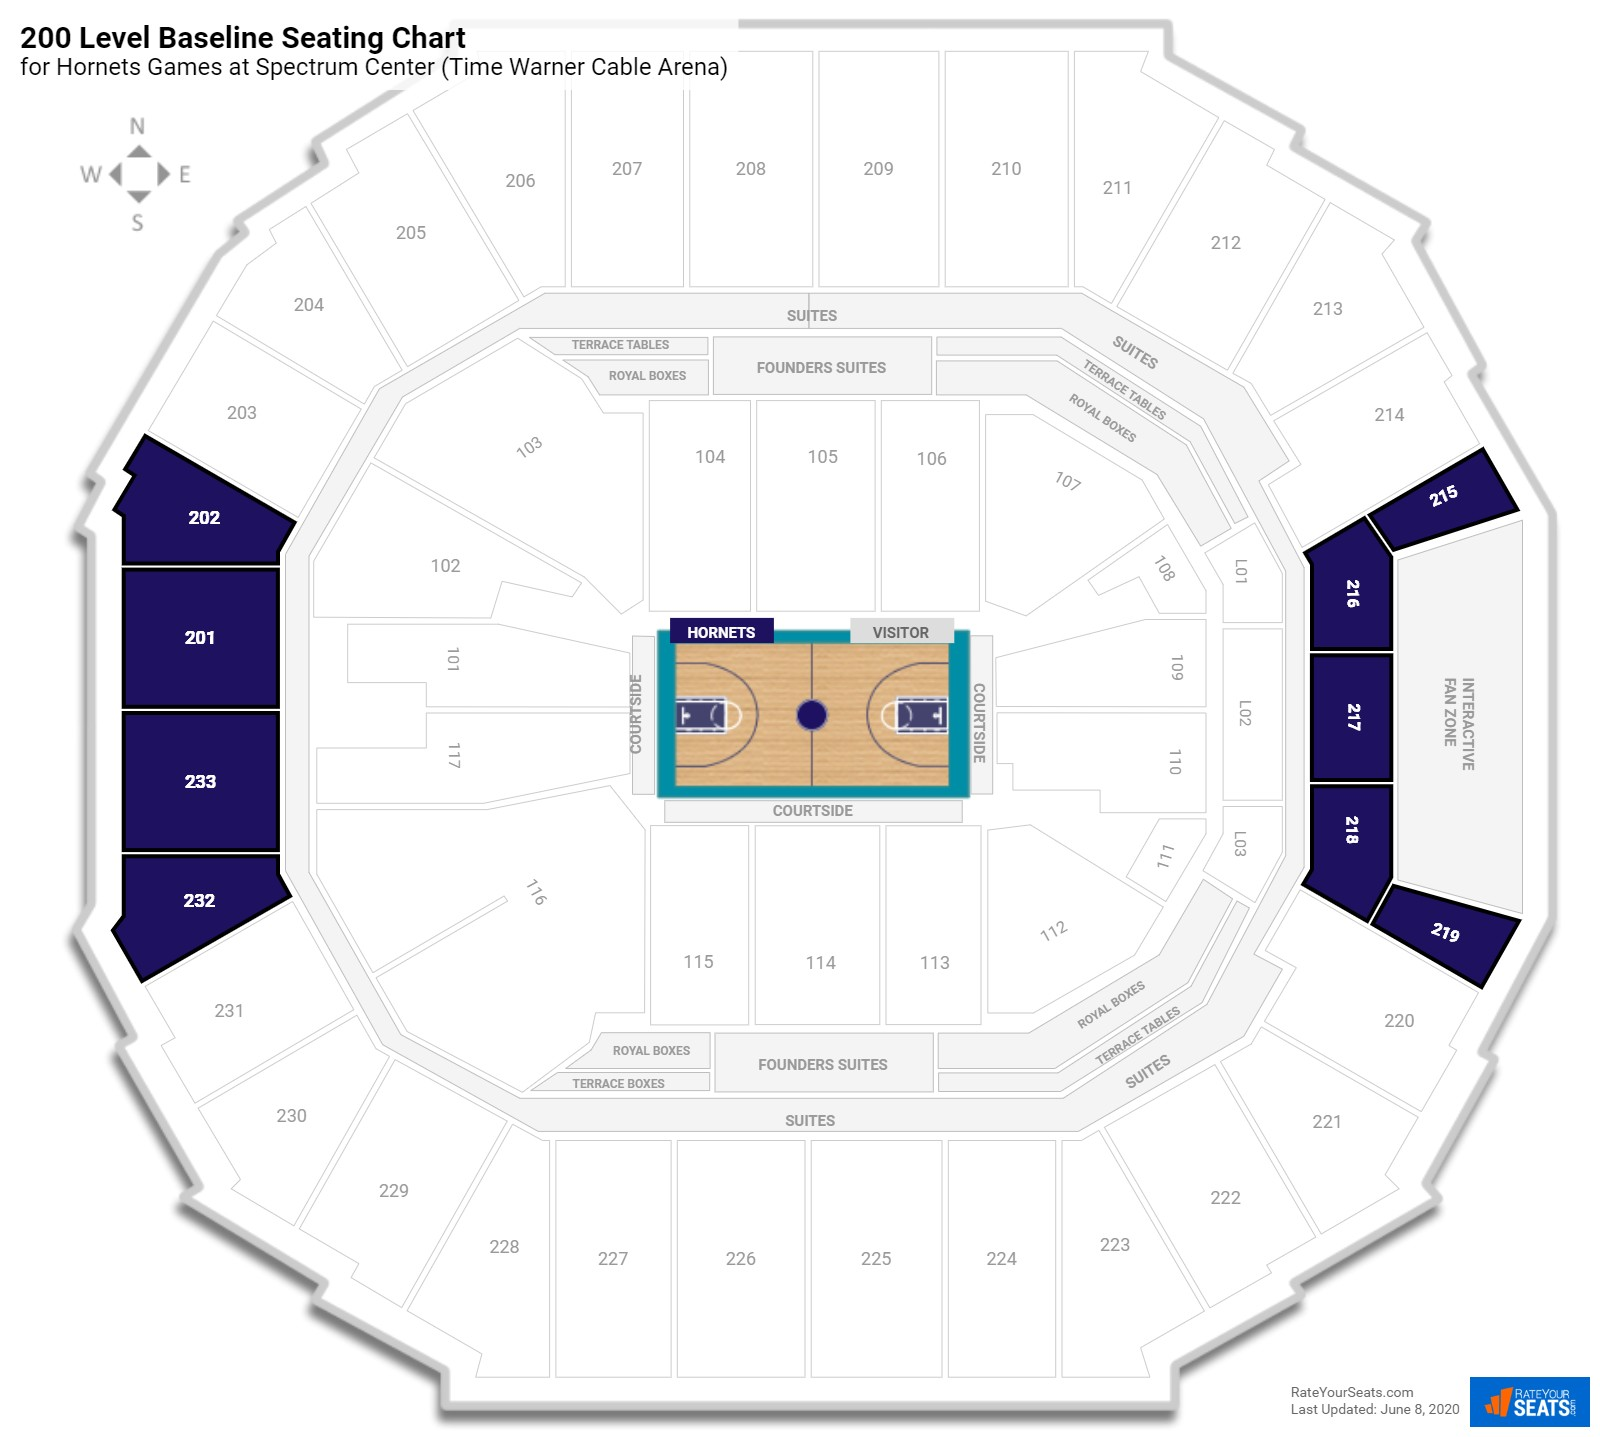 Spectrum Center (Time Warner Cable Arena) 200 Level Baseline seating chart